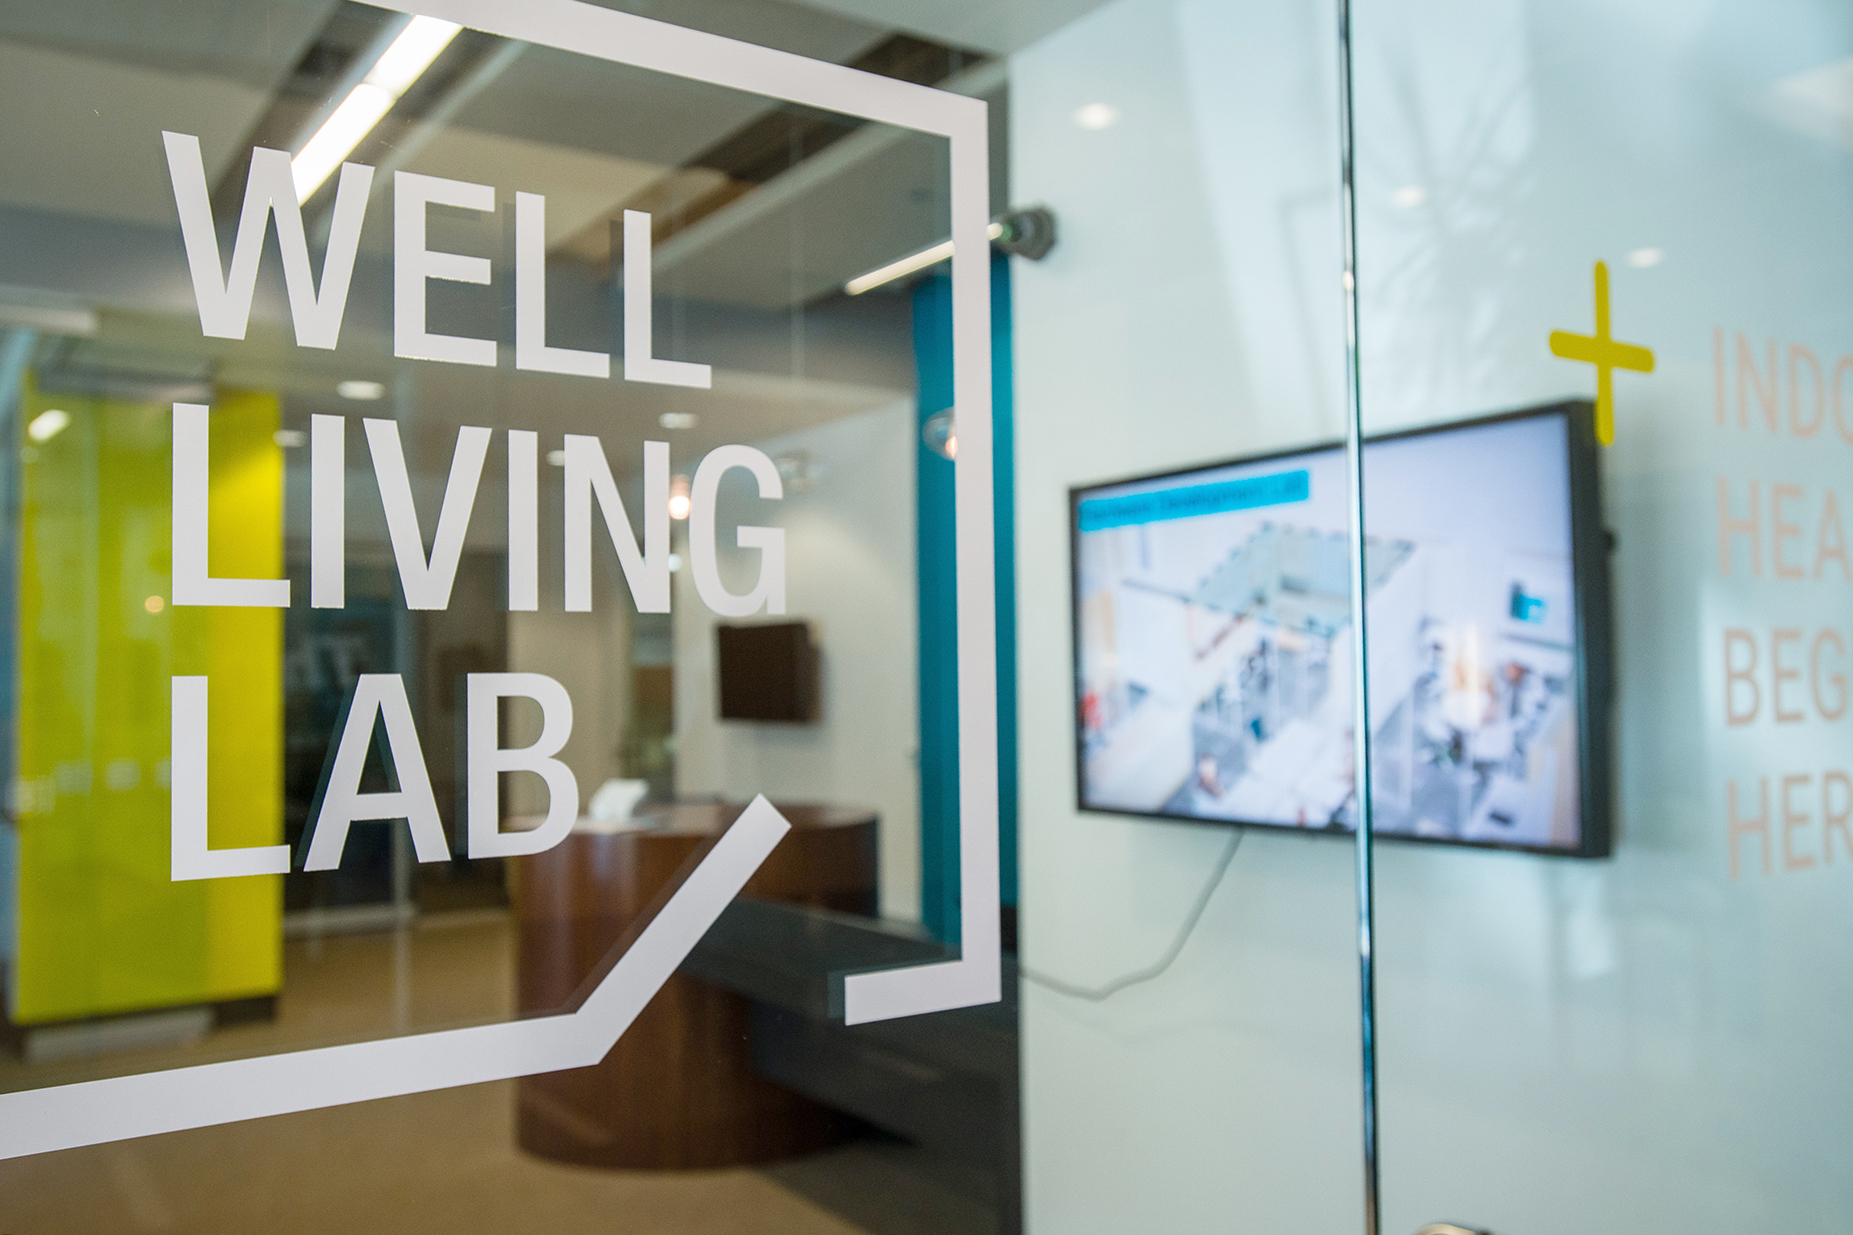 The Well Living Lab Attempts To Connect Human Health With